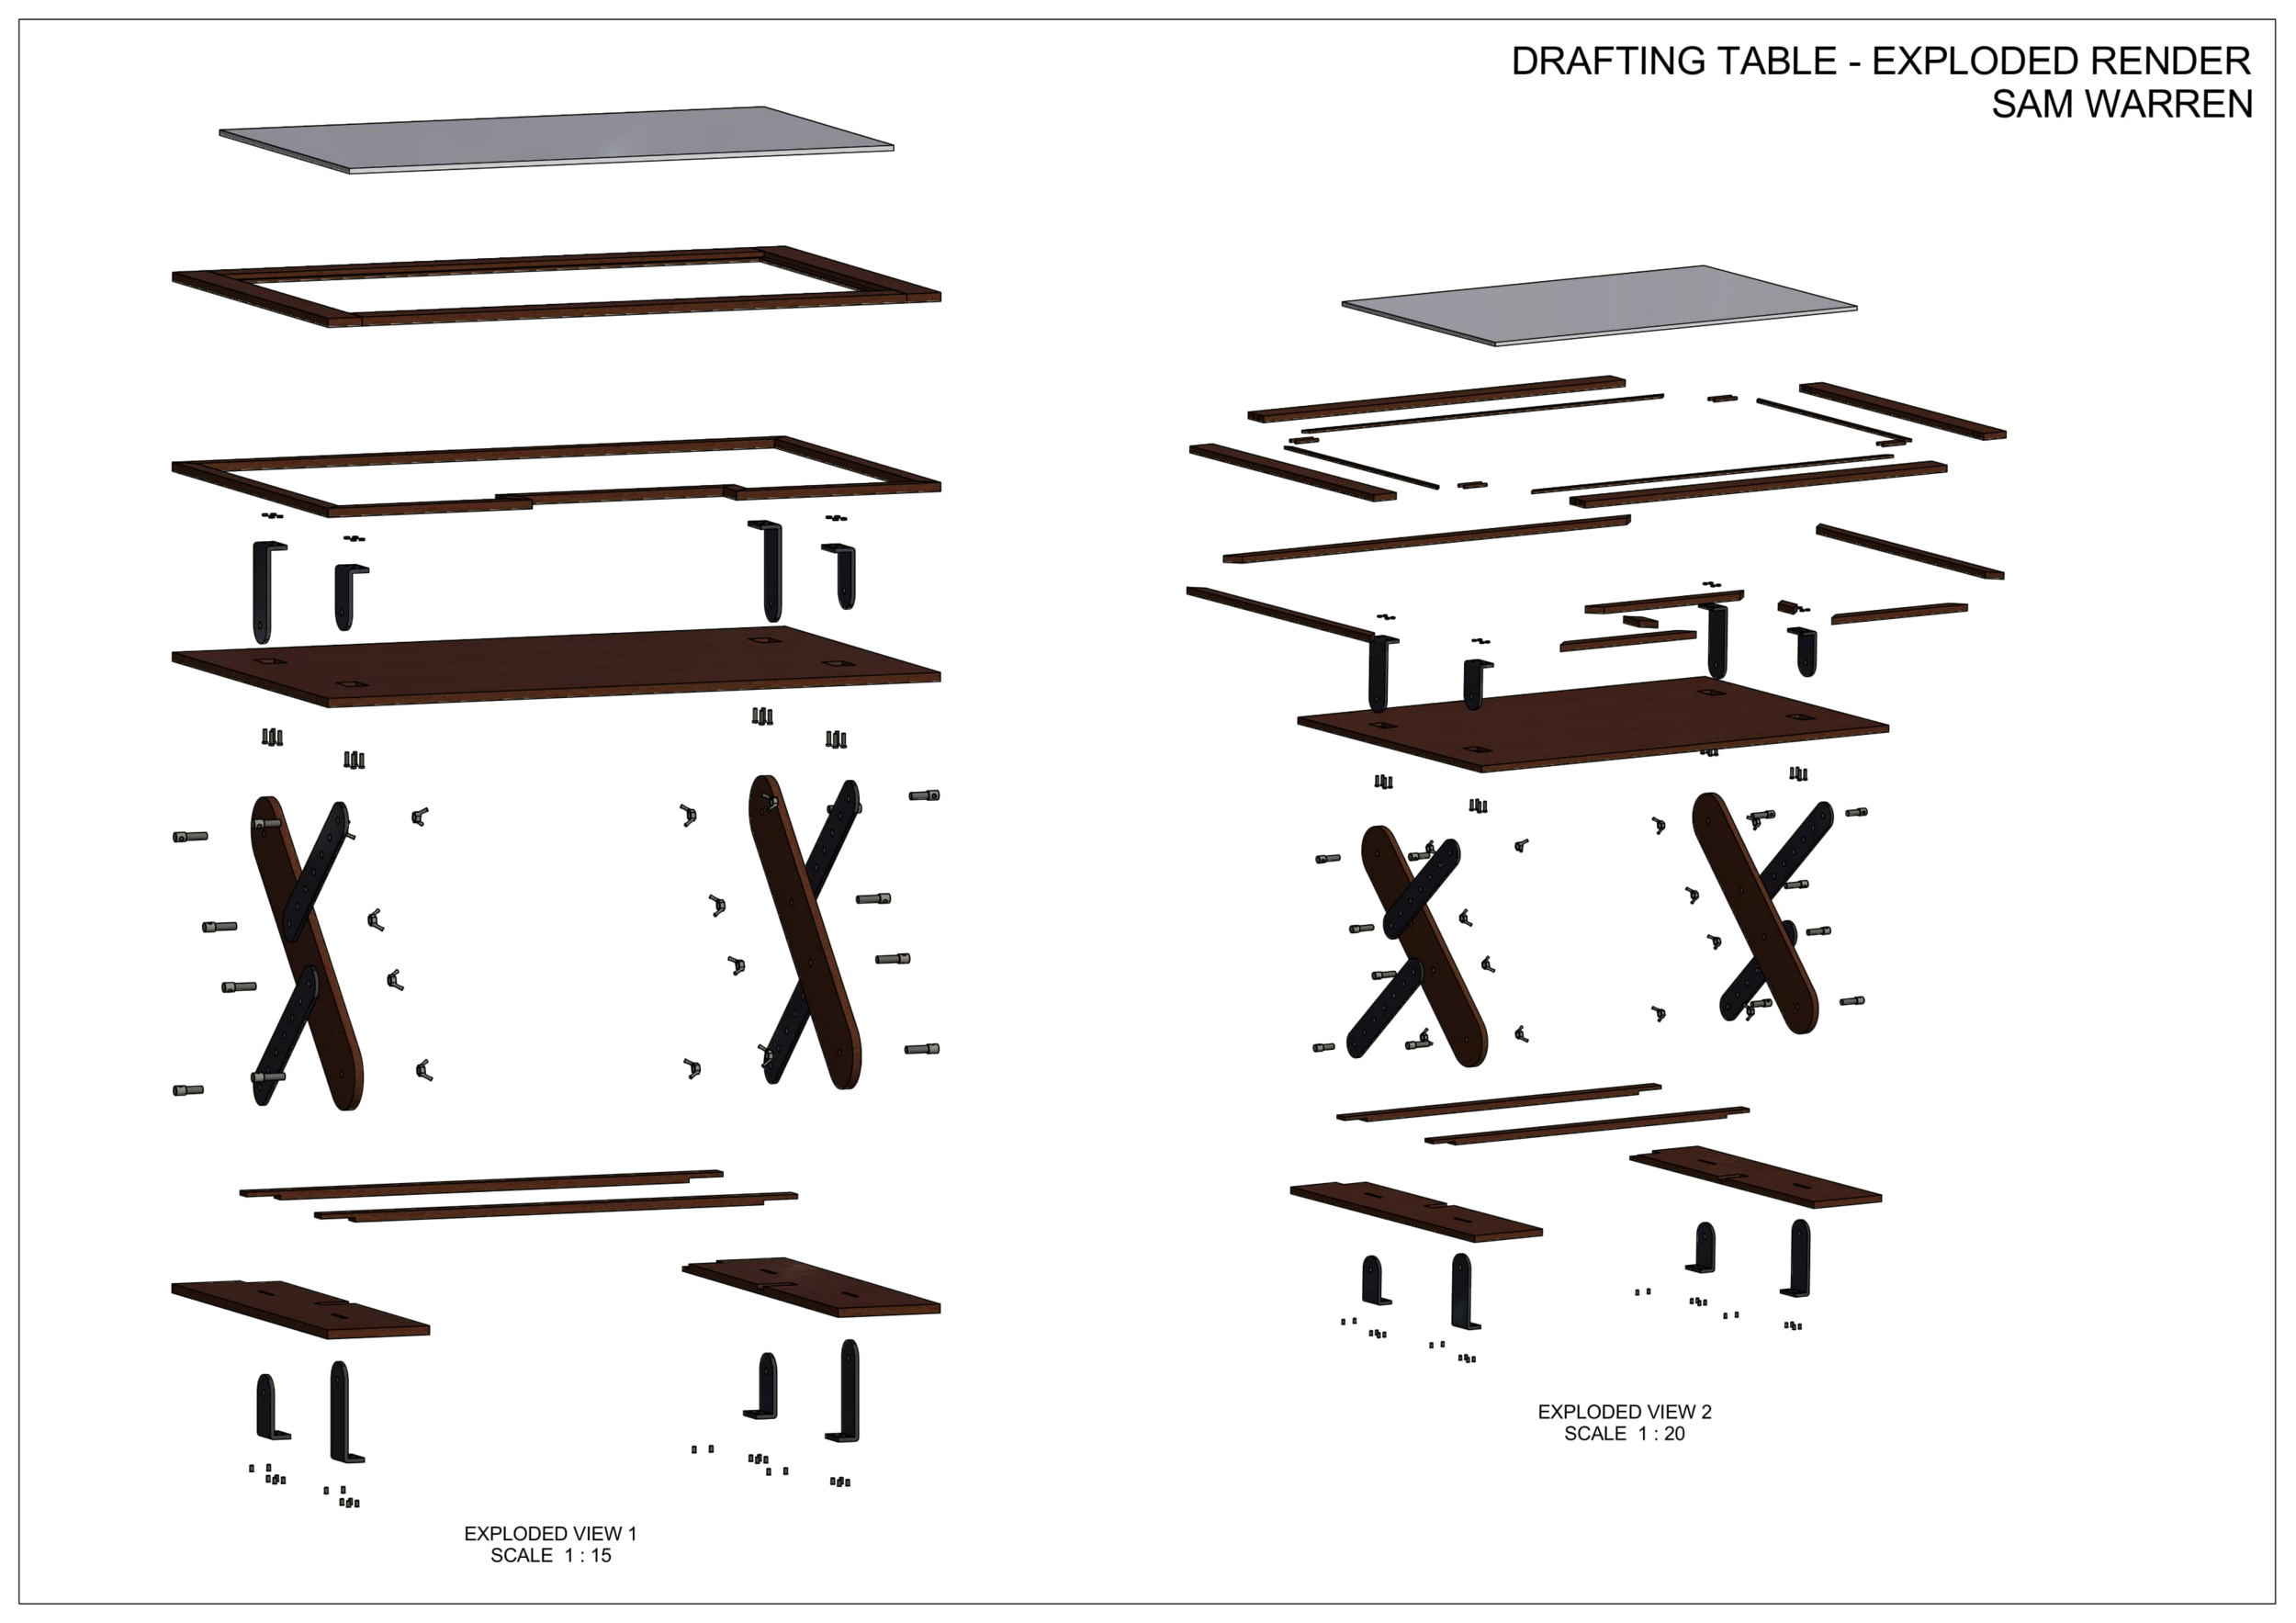 UNDATED EXPLODED RENDERED DRAFTING TABLE-1.png